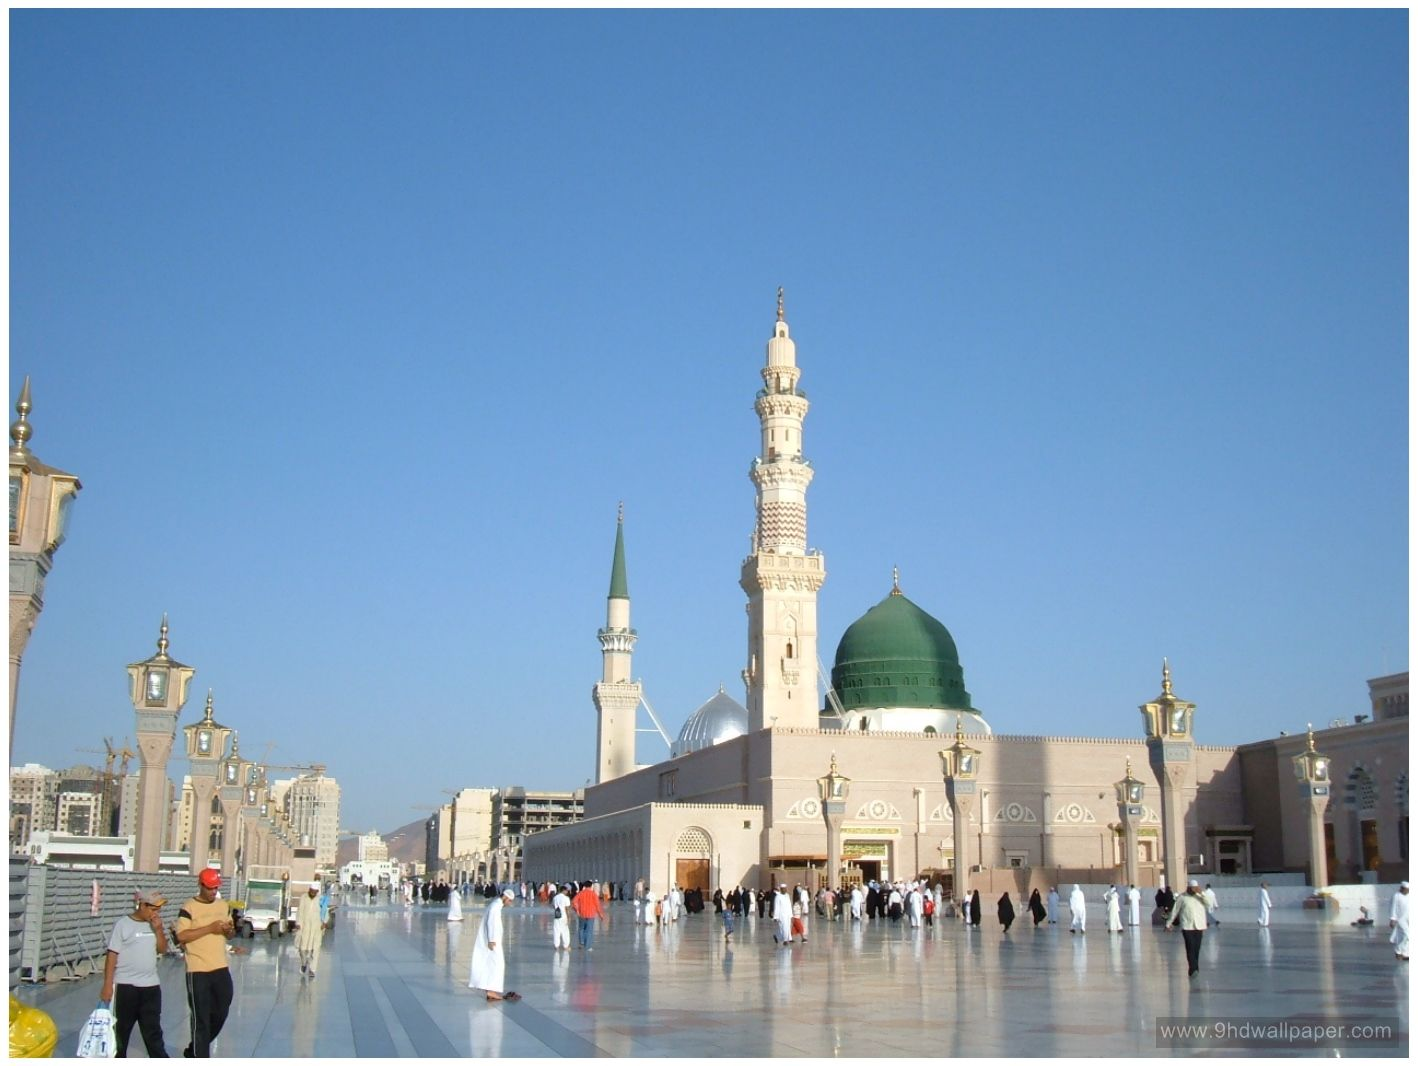 Masjid Nabawi Hd Wallpaper Free Download Wallpapers Pinterest